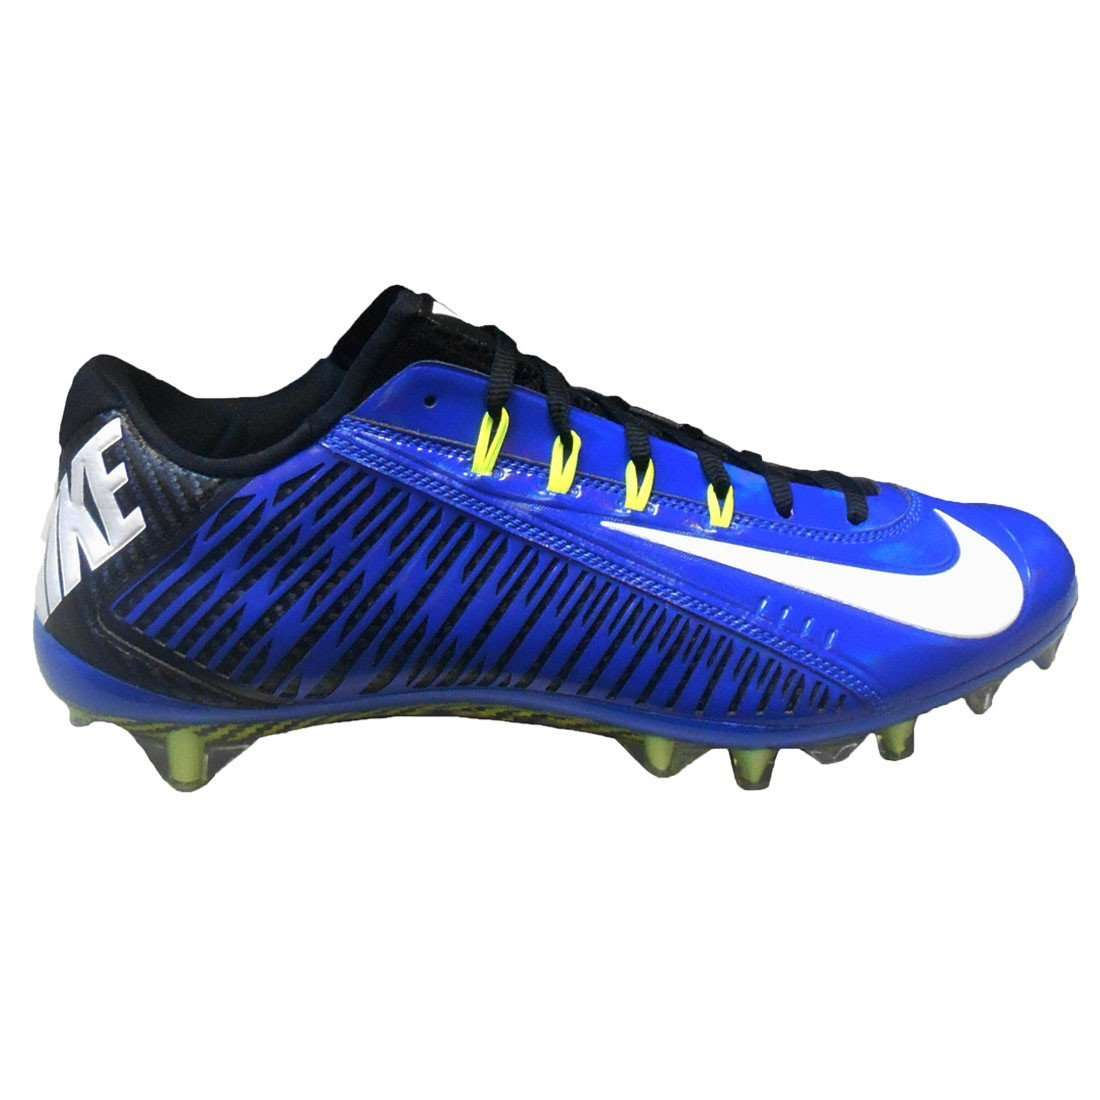 4d54045fa9c72 Nike Vapor Carbon Elite TD 2014 Football Cleats